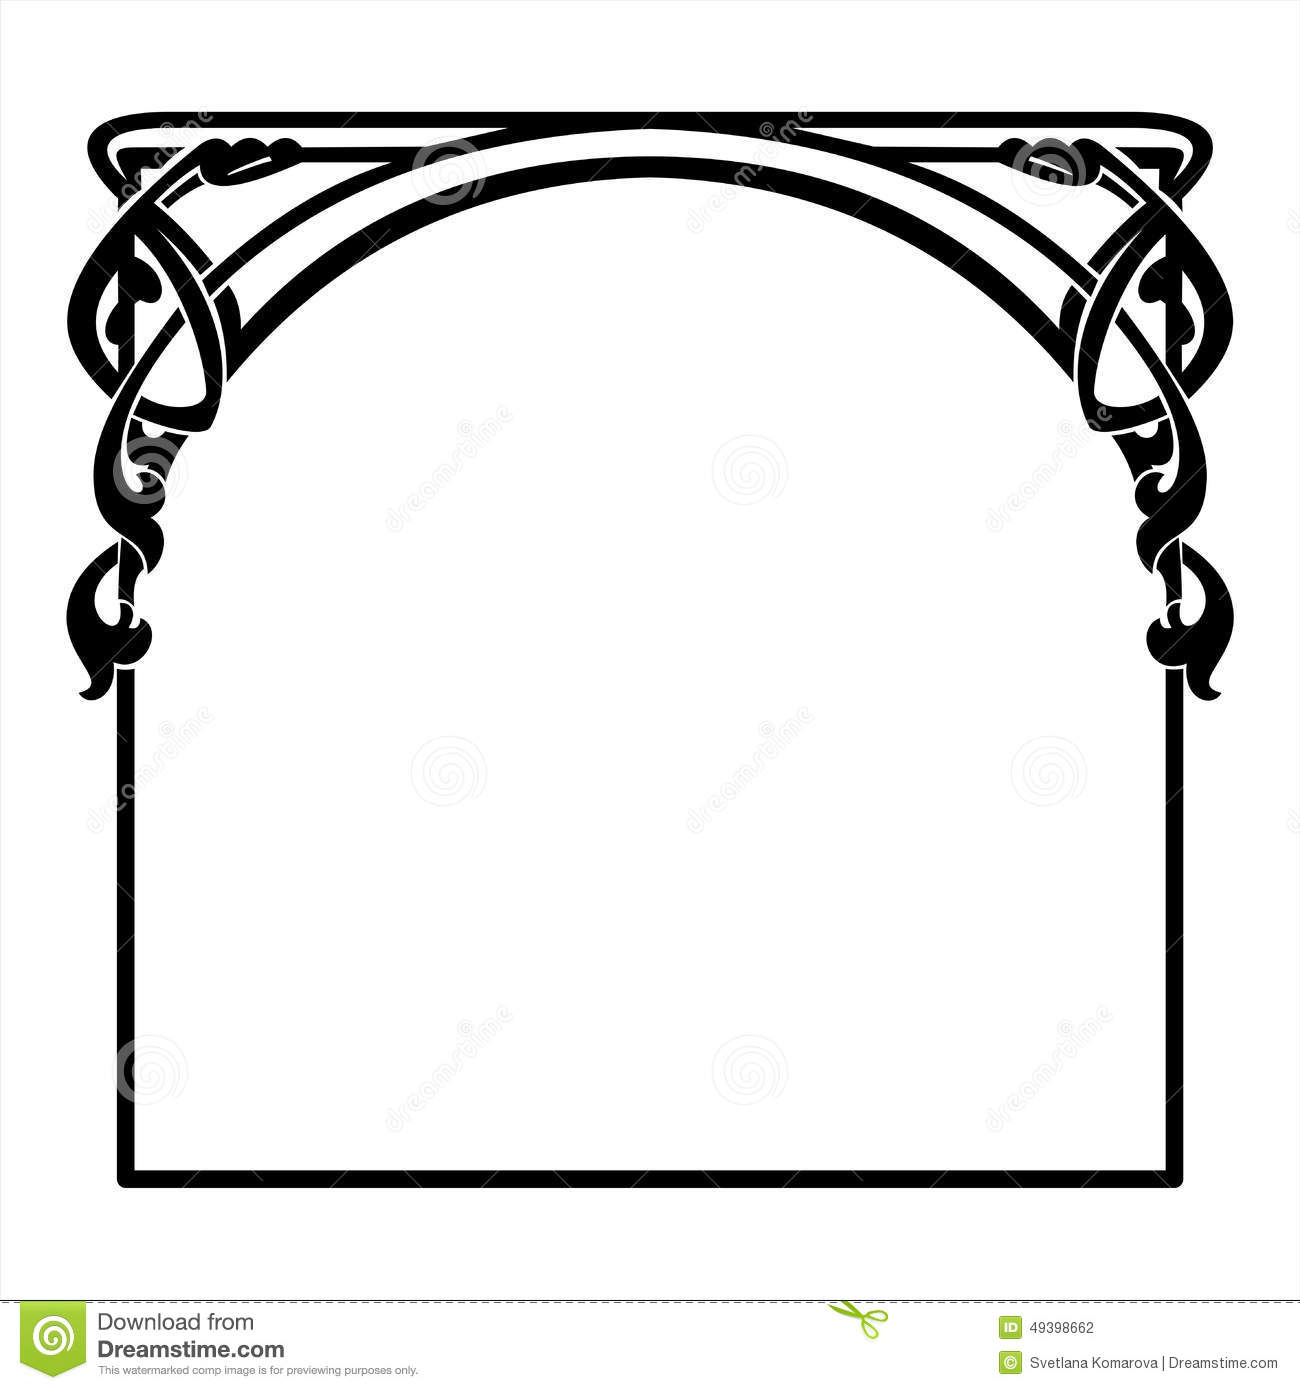 square decorative frame in the art nouveau style stock vector rh dreamstime com art deco clip art border art deco clipart